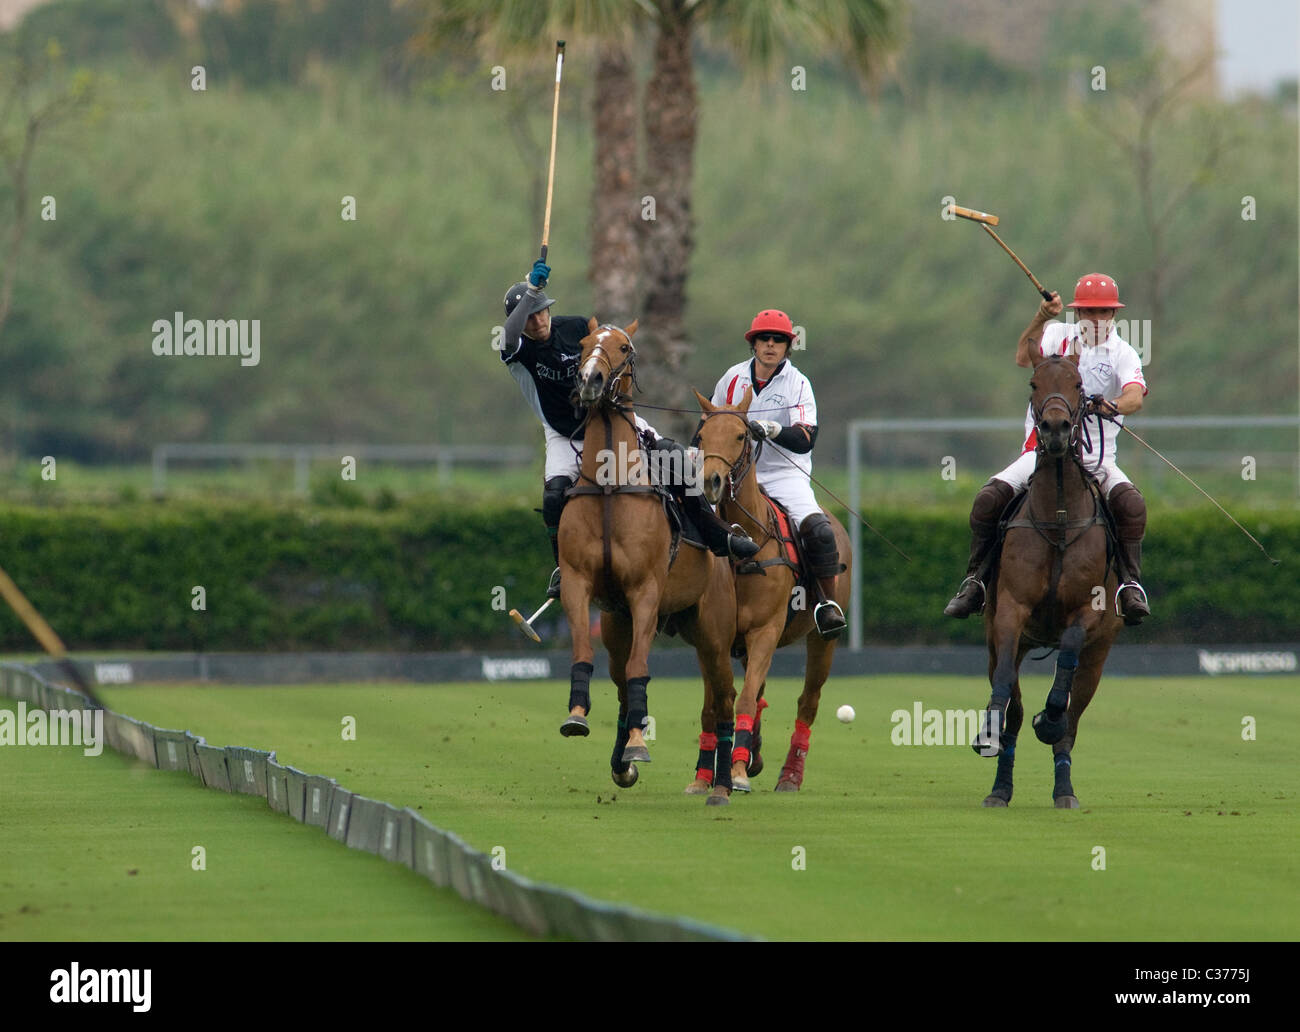 Polo players in action during match - Stock Image